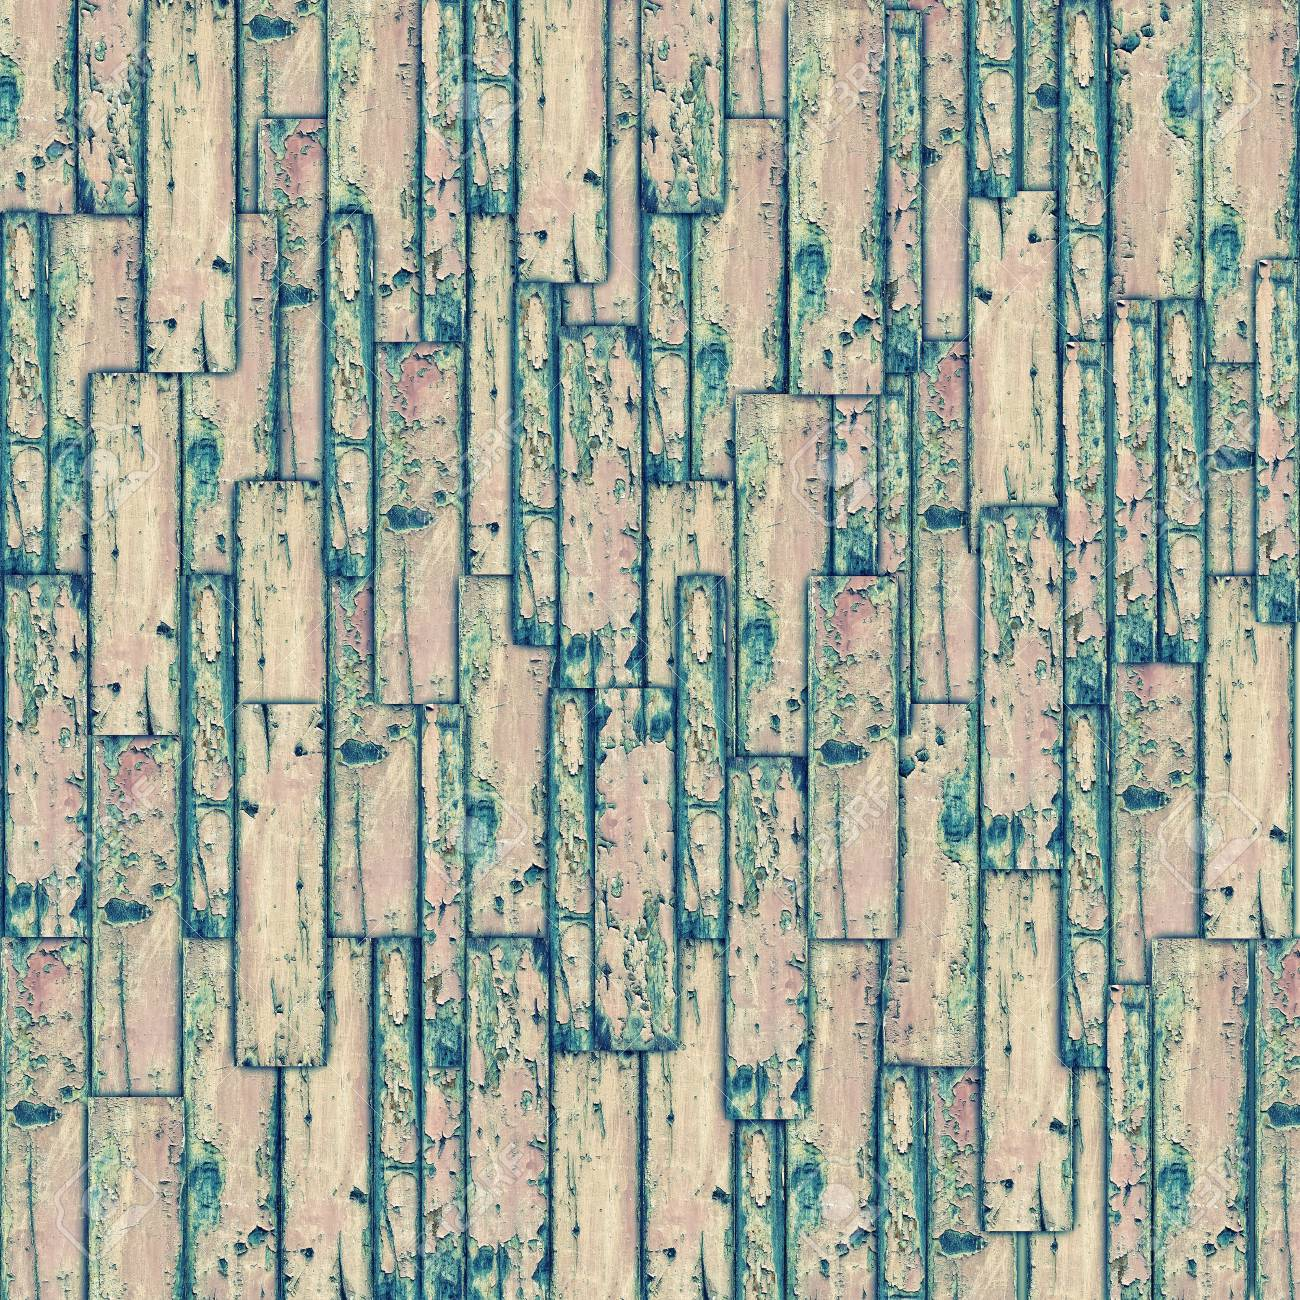 Old Wood Texture Panels Background Stock Photo - 12900975